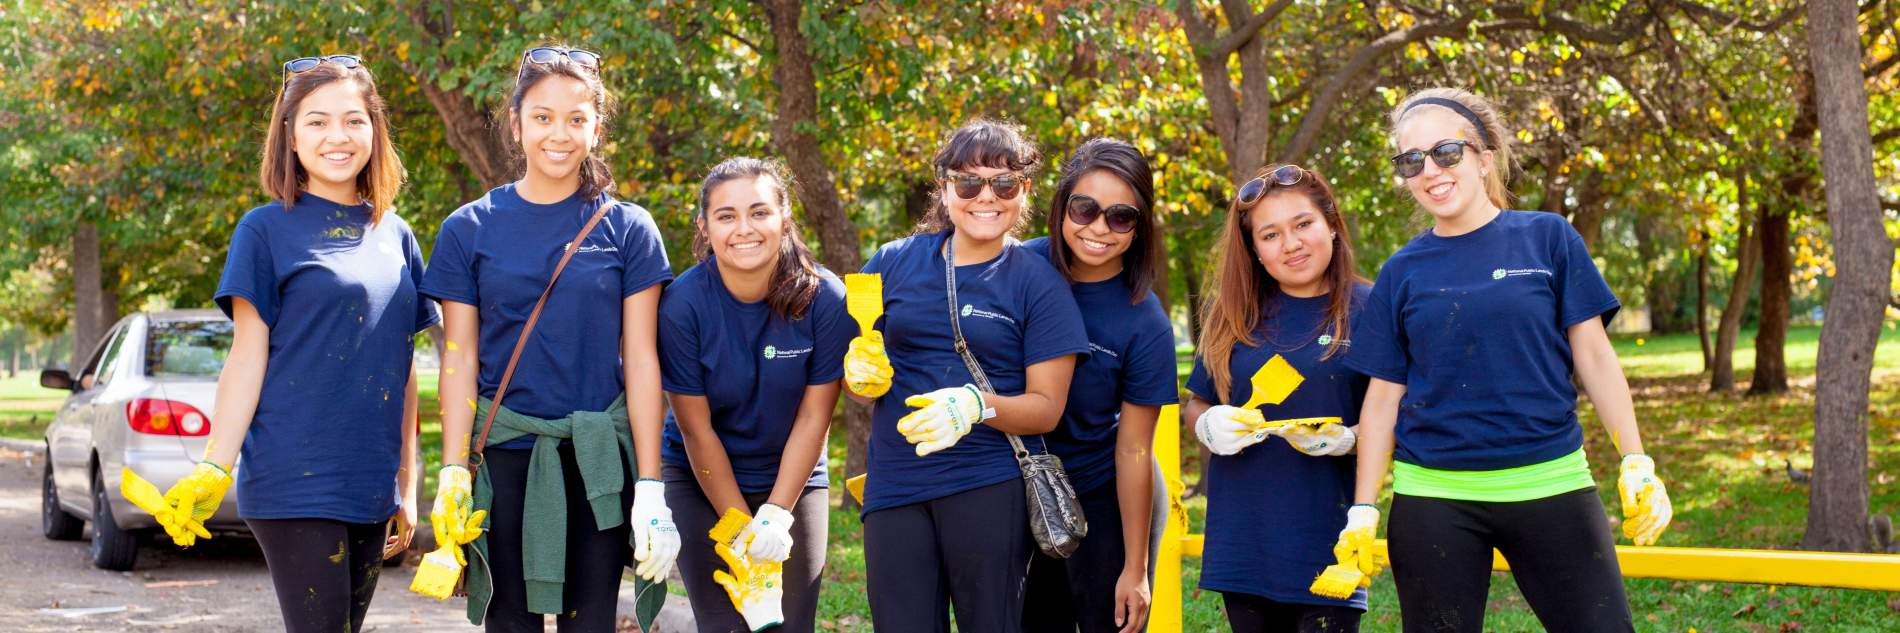 Teen volunteers at an NPLD event in Chicago